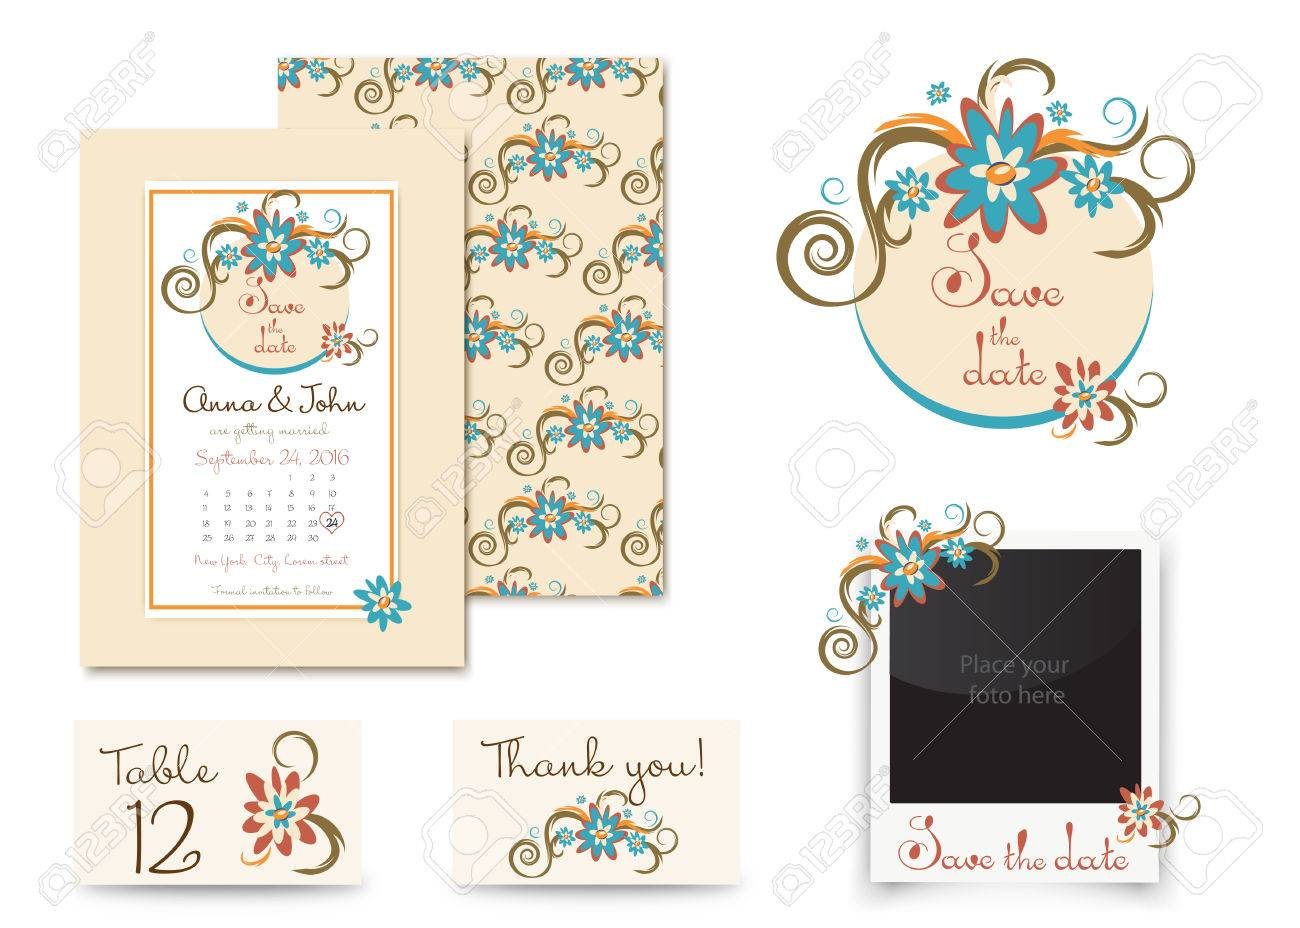 Place Card Template Free Download – Thank You Card Template Free Download